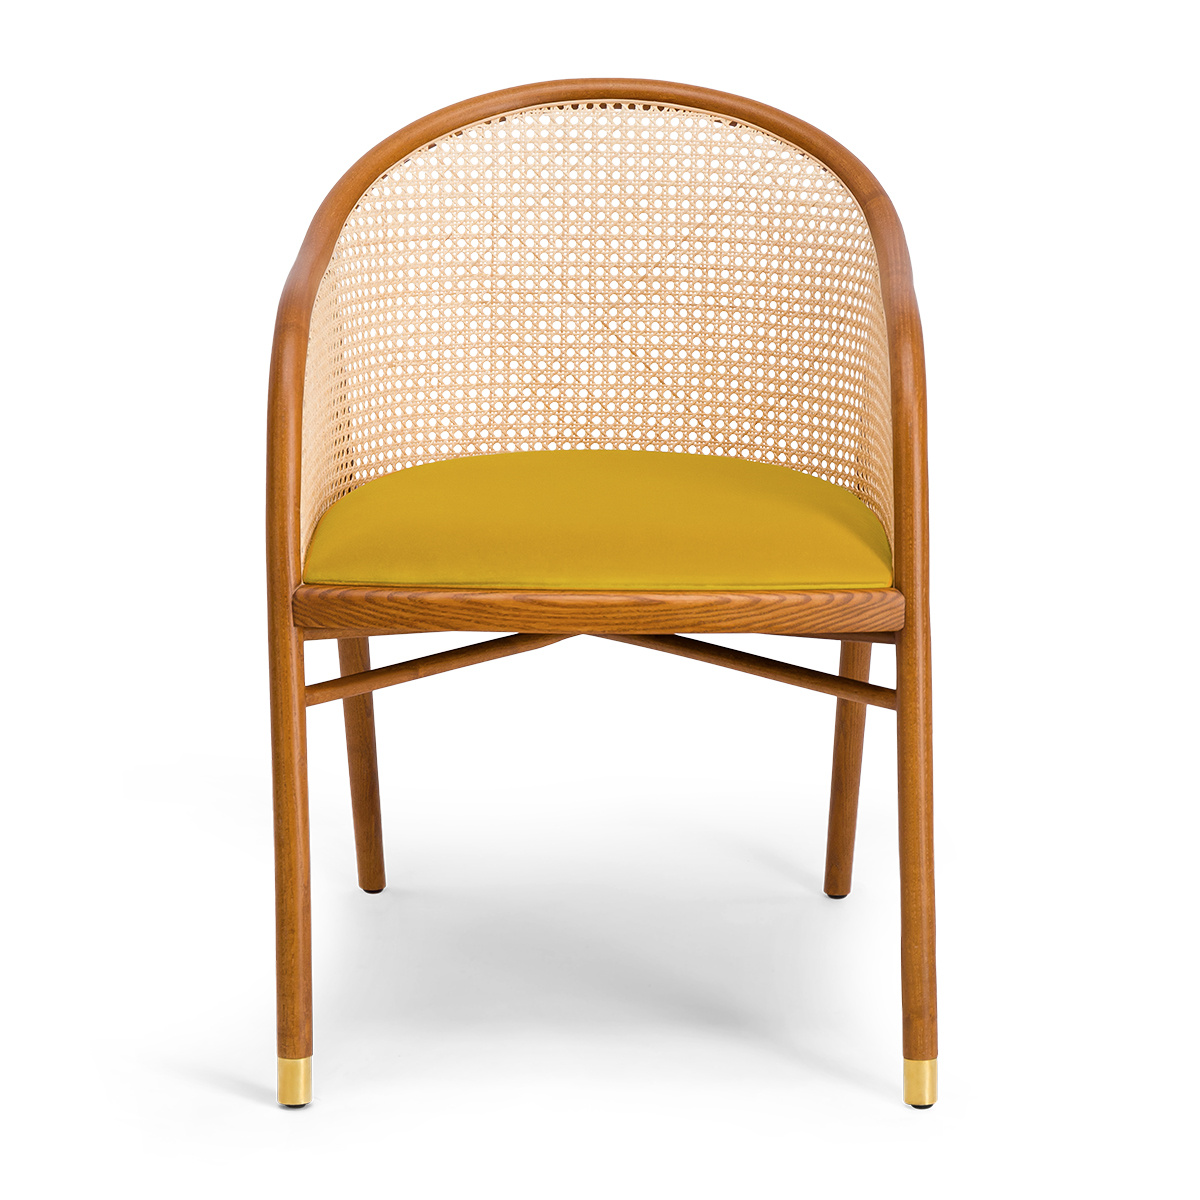 Cavallo Armchair, Yellow Velvet with Cherrywood Frame